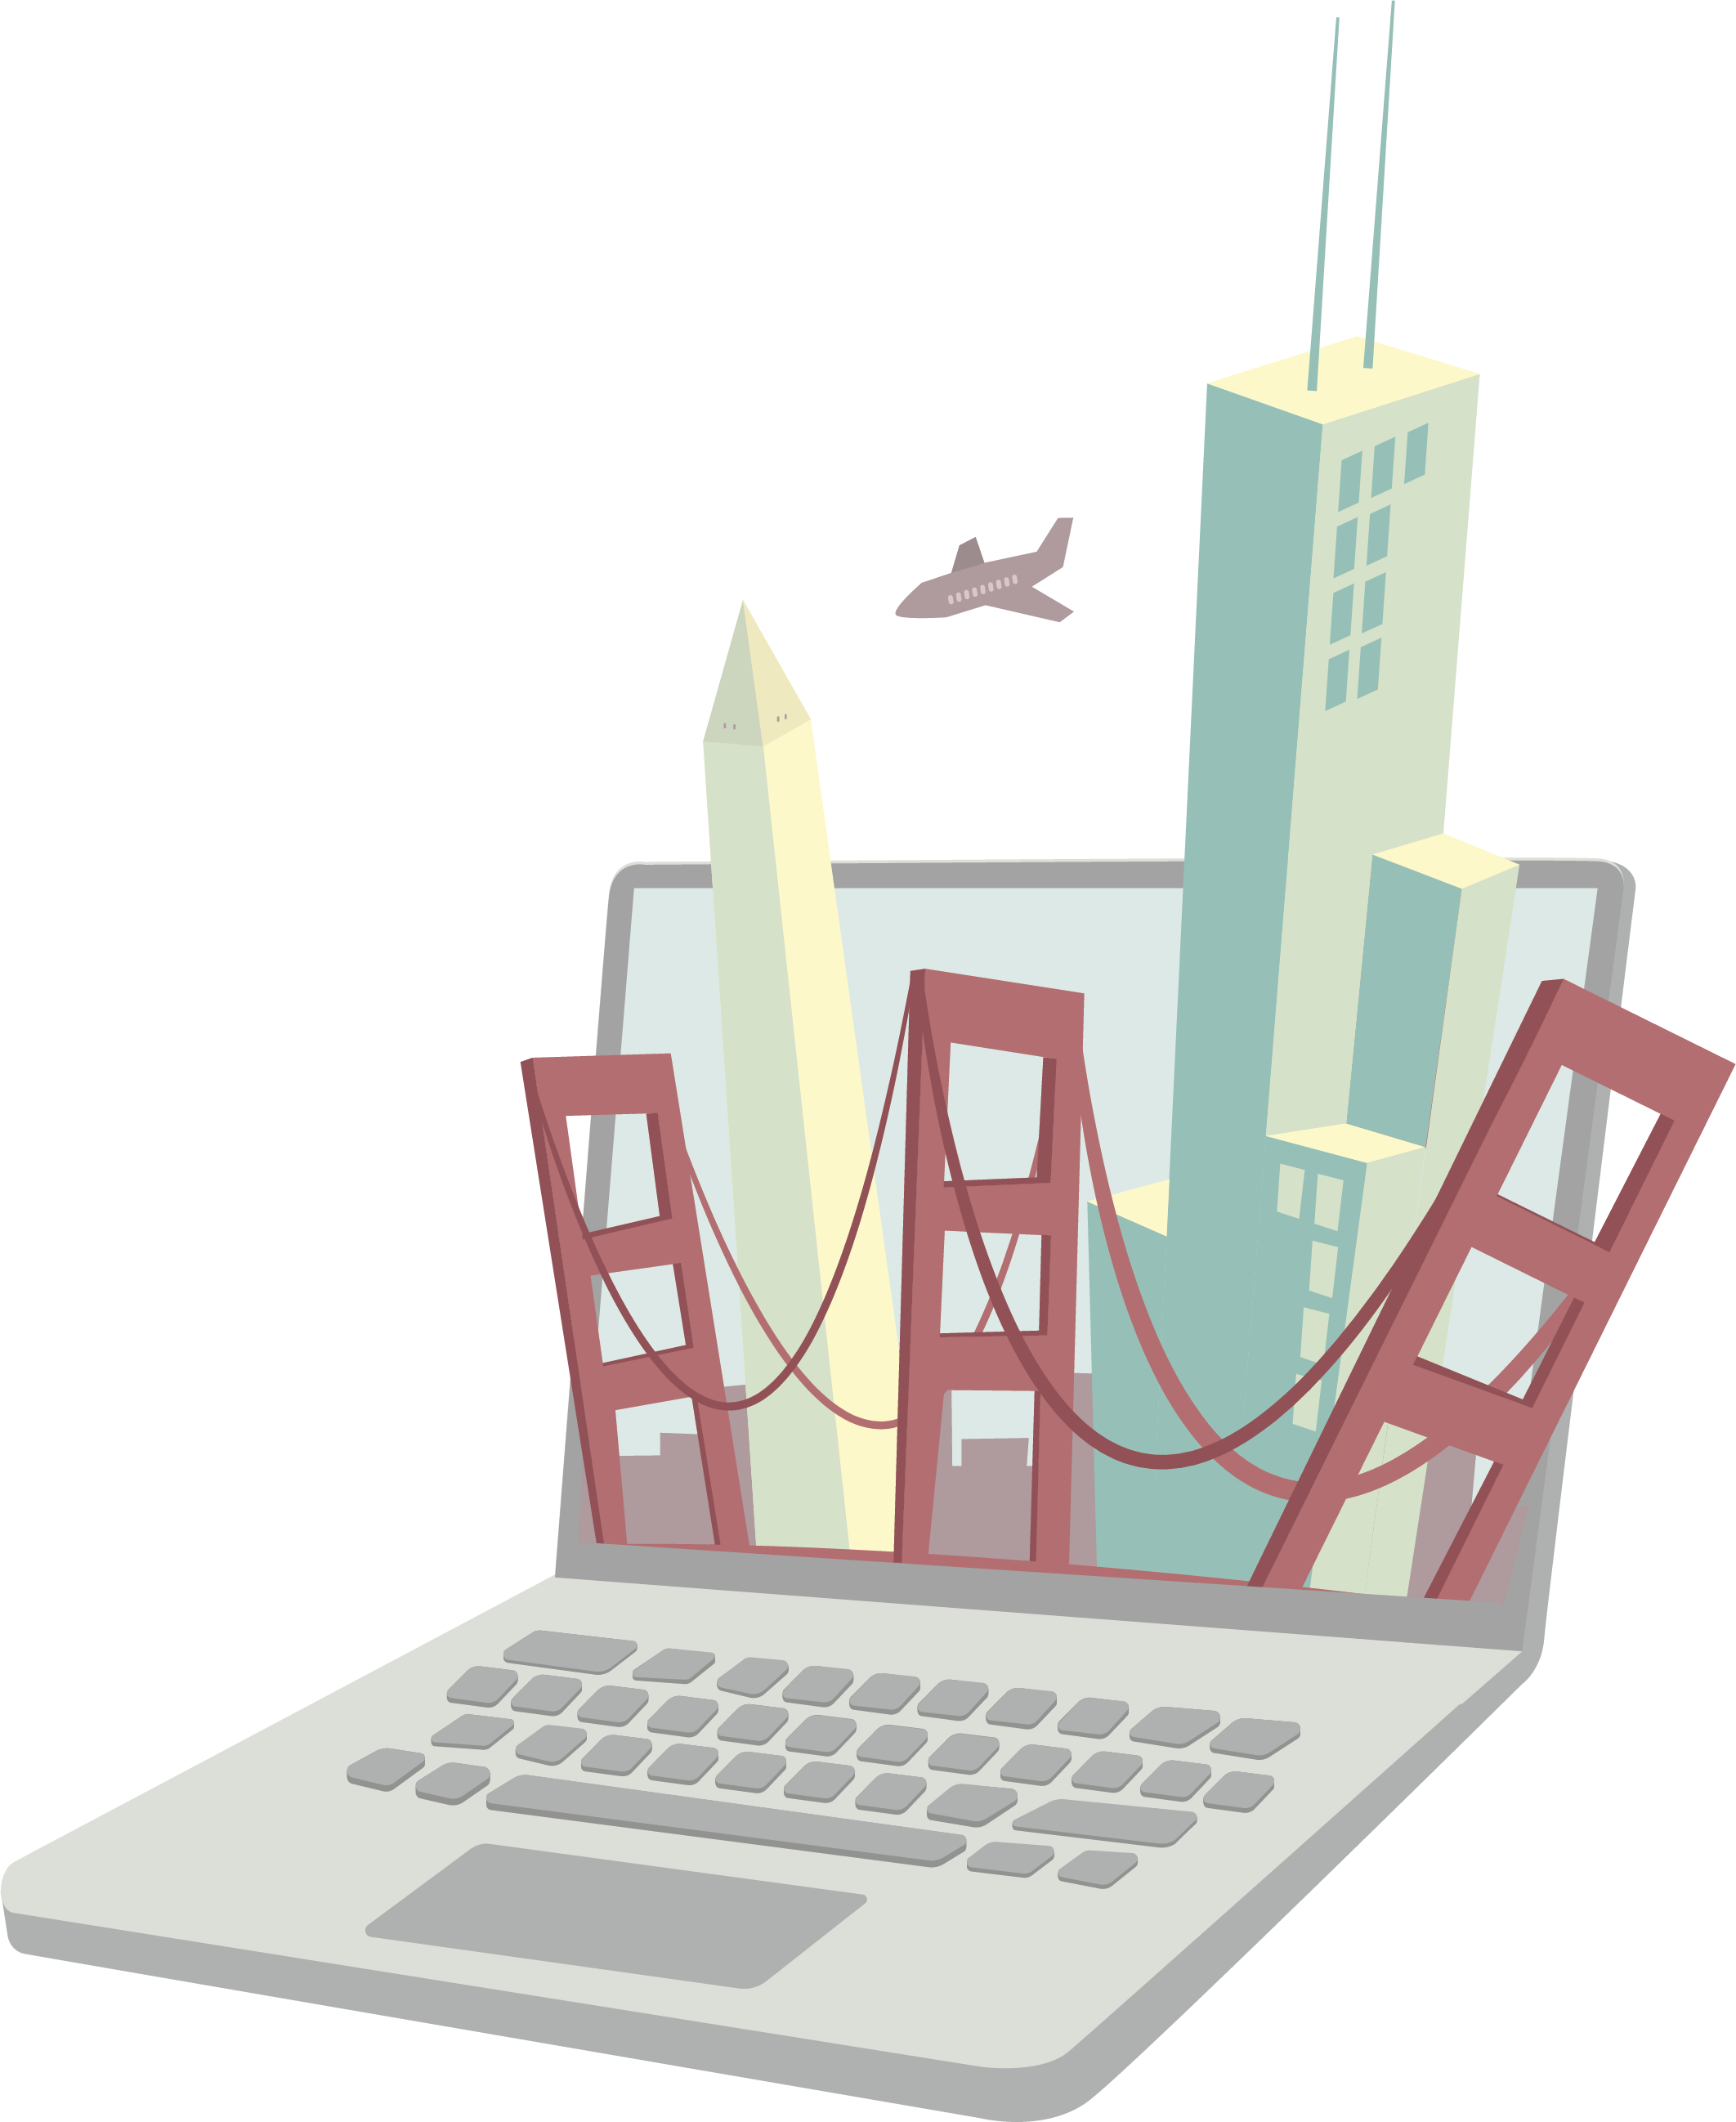 Illustrated image of city monuments inside a laptop screen